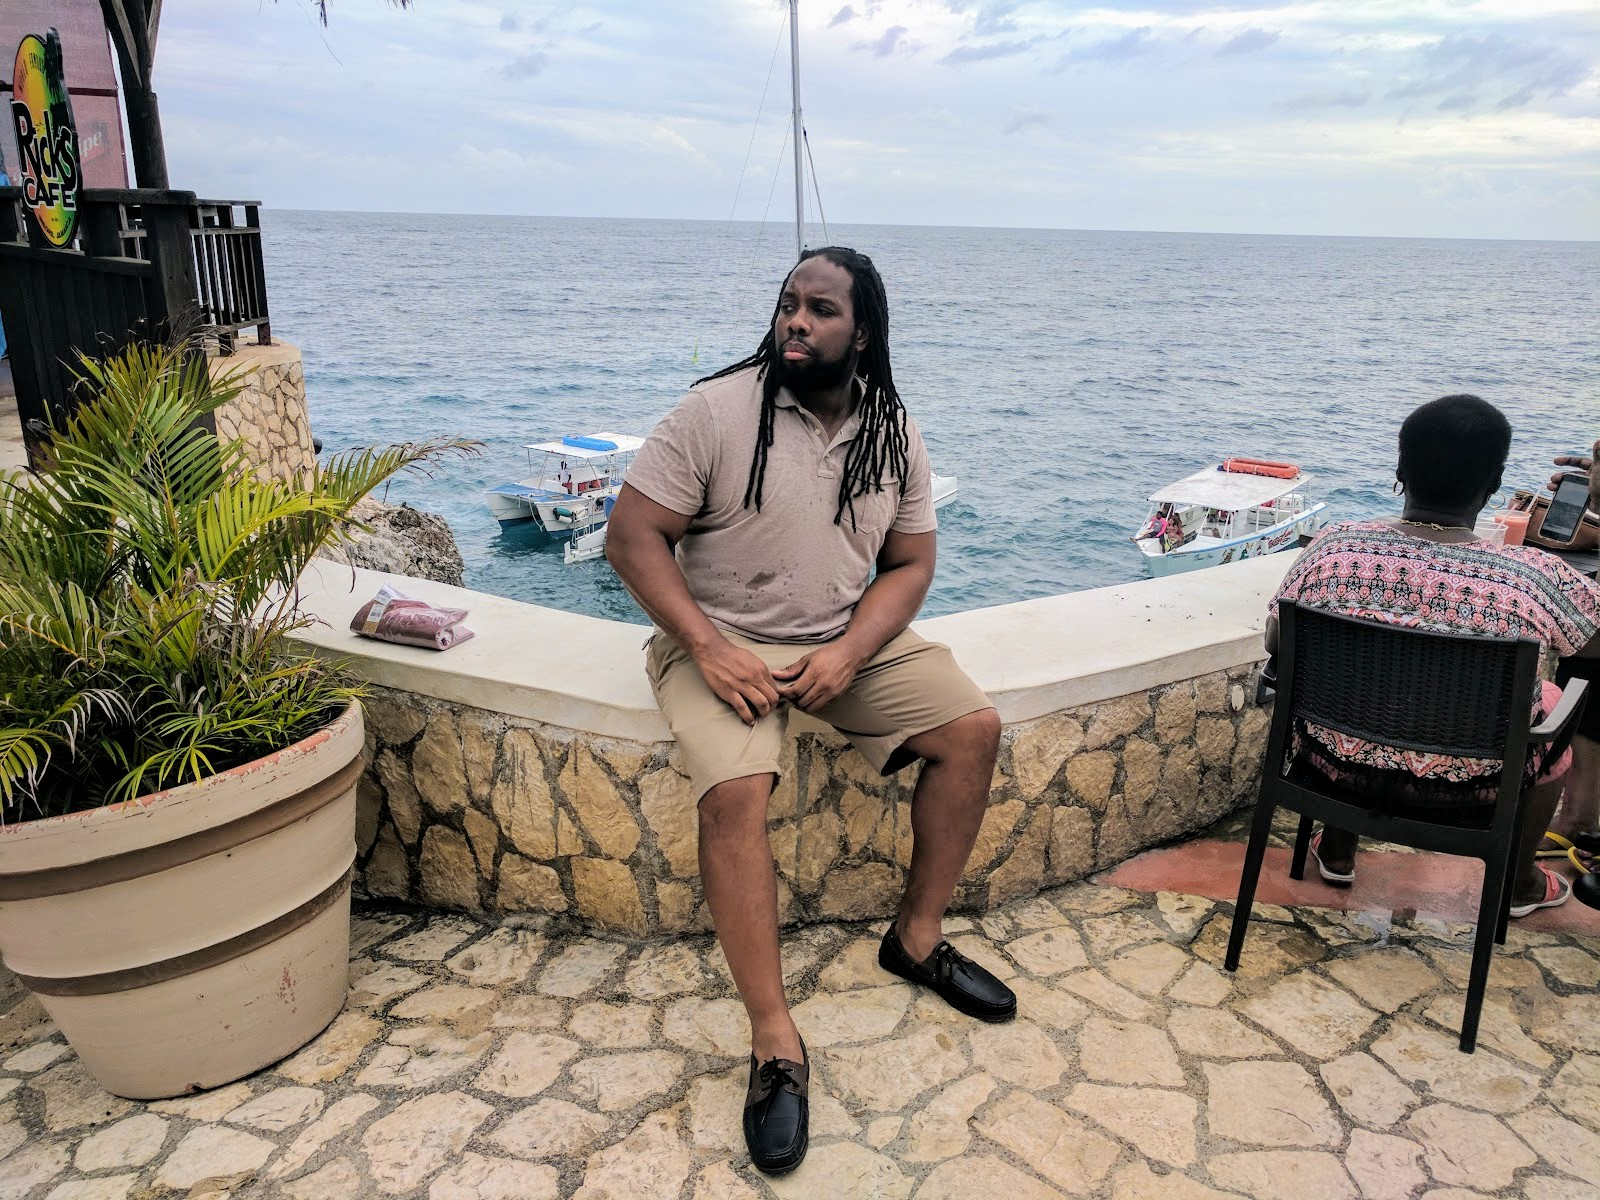 wanderlust, travelnoire, travel, bigmentravel, Jamaica, Caribbean, plus male blogger, big and tall blogger, men of size, brawn blogger, big and tall model, plus male model, gentlemenscurb, kavah king, brawn model, big and tall, brawn, plus male, king, kavah, brooklyn, new york city, brawnfit, brawnfitness, brawn fashion, big and tall fashion, plus male fashion, gentlemen, curb, plusmalefashion, plus malemodel, brawn model, plus size influencer, influencer, plus male influencer,